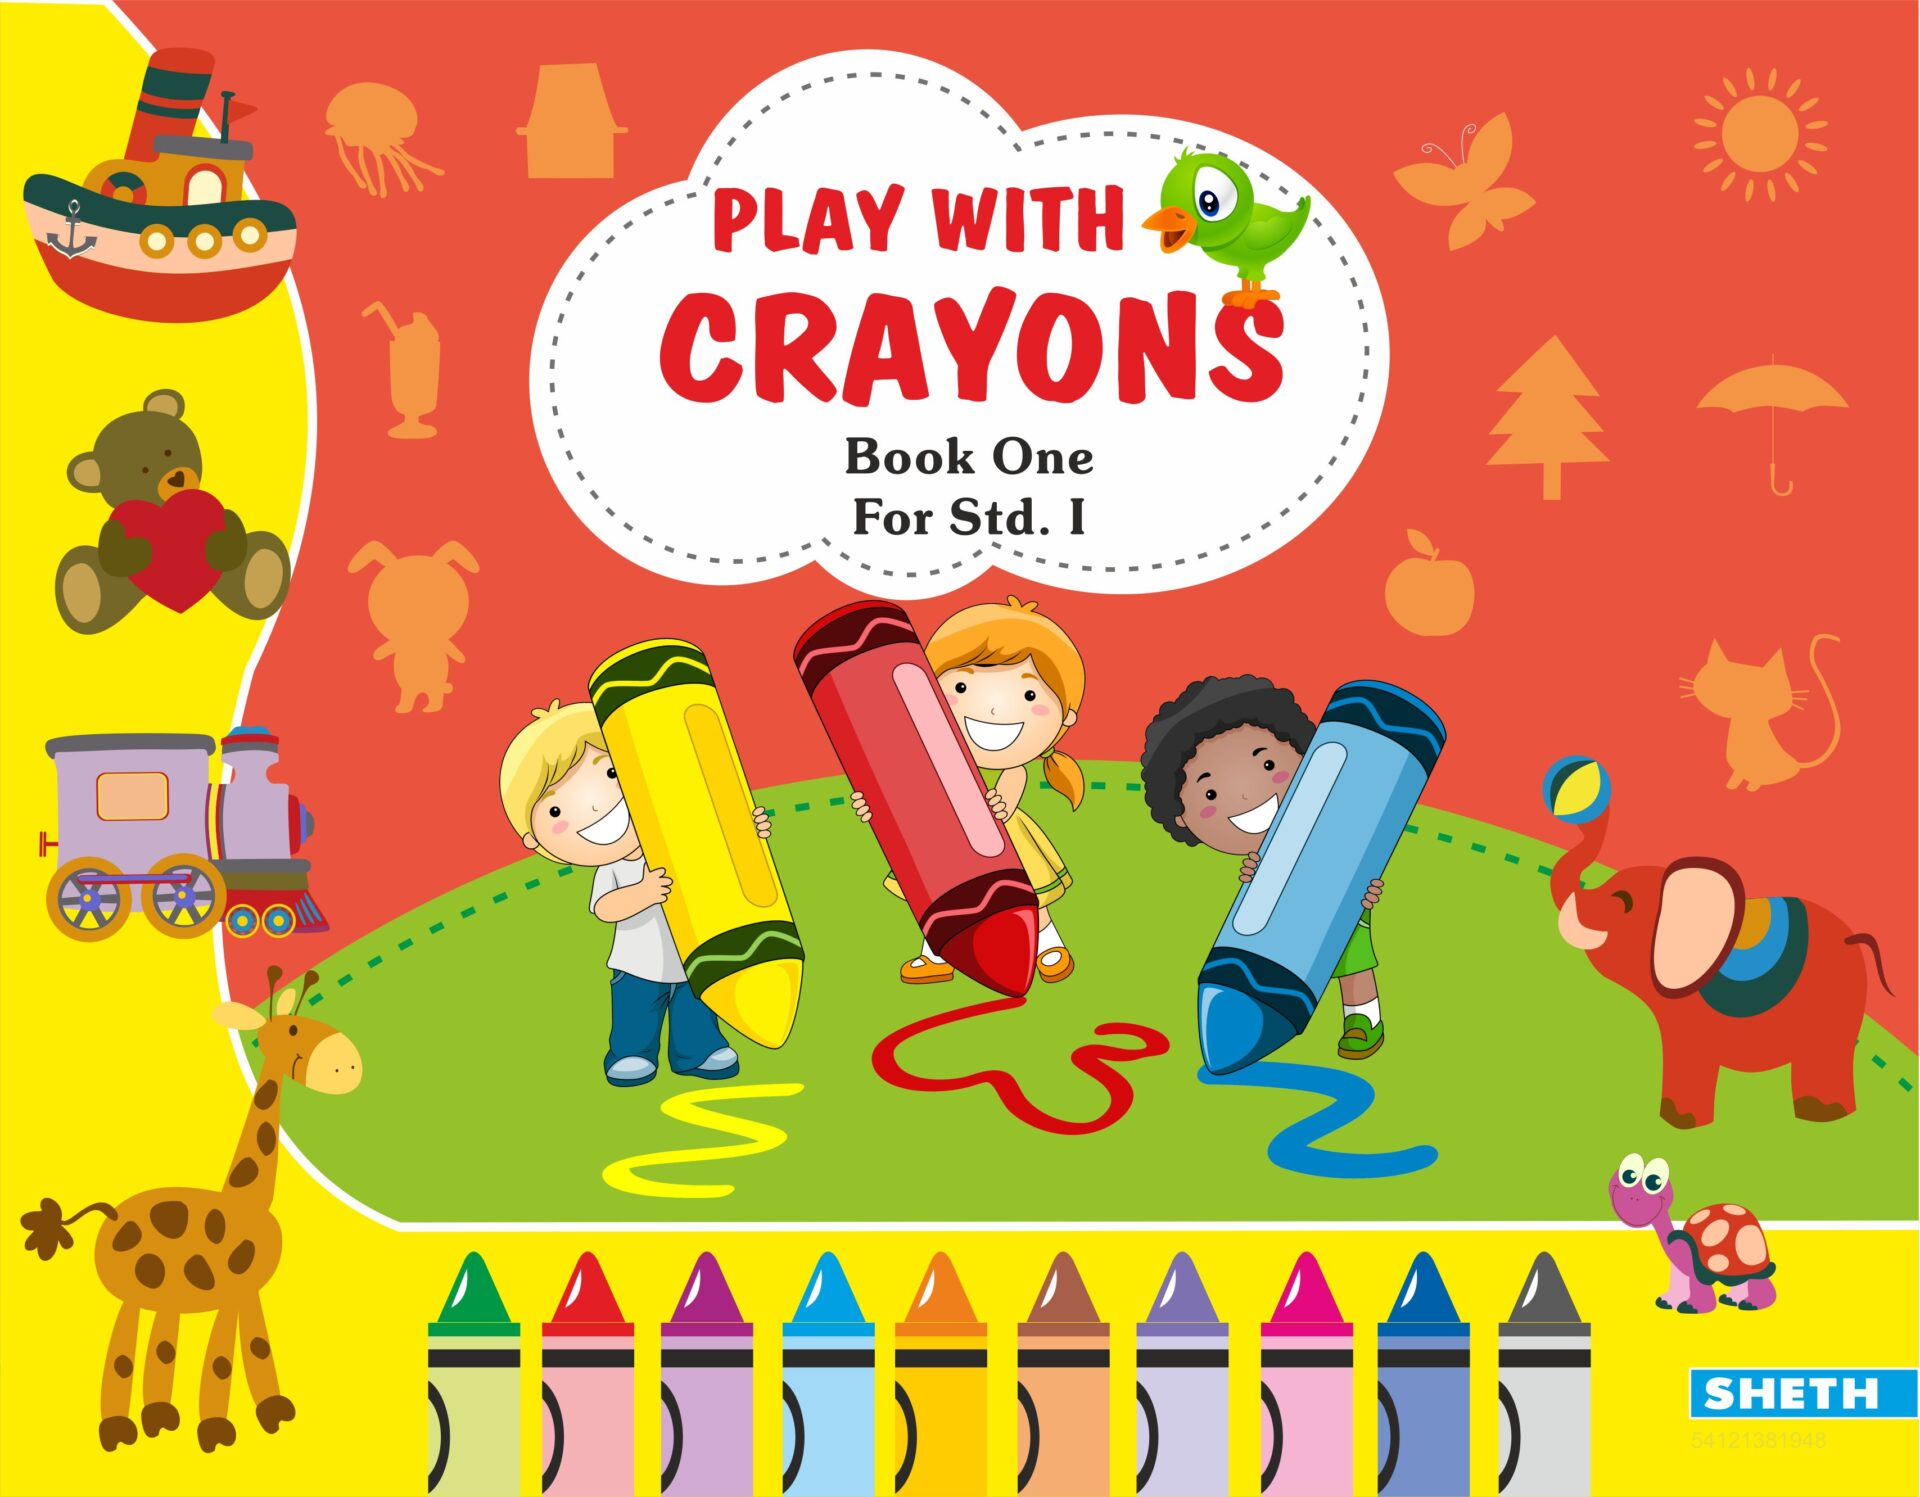 Sheth Books Play with Crayons Book 1 for Std. I 1